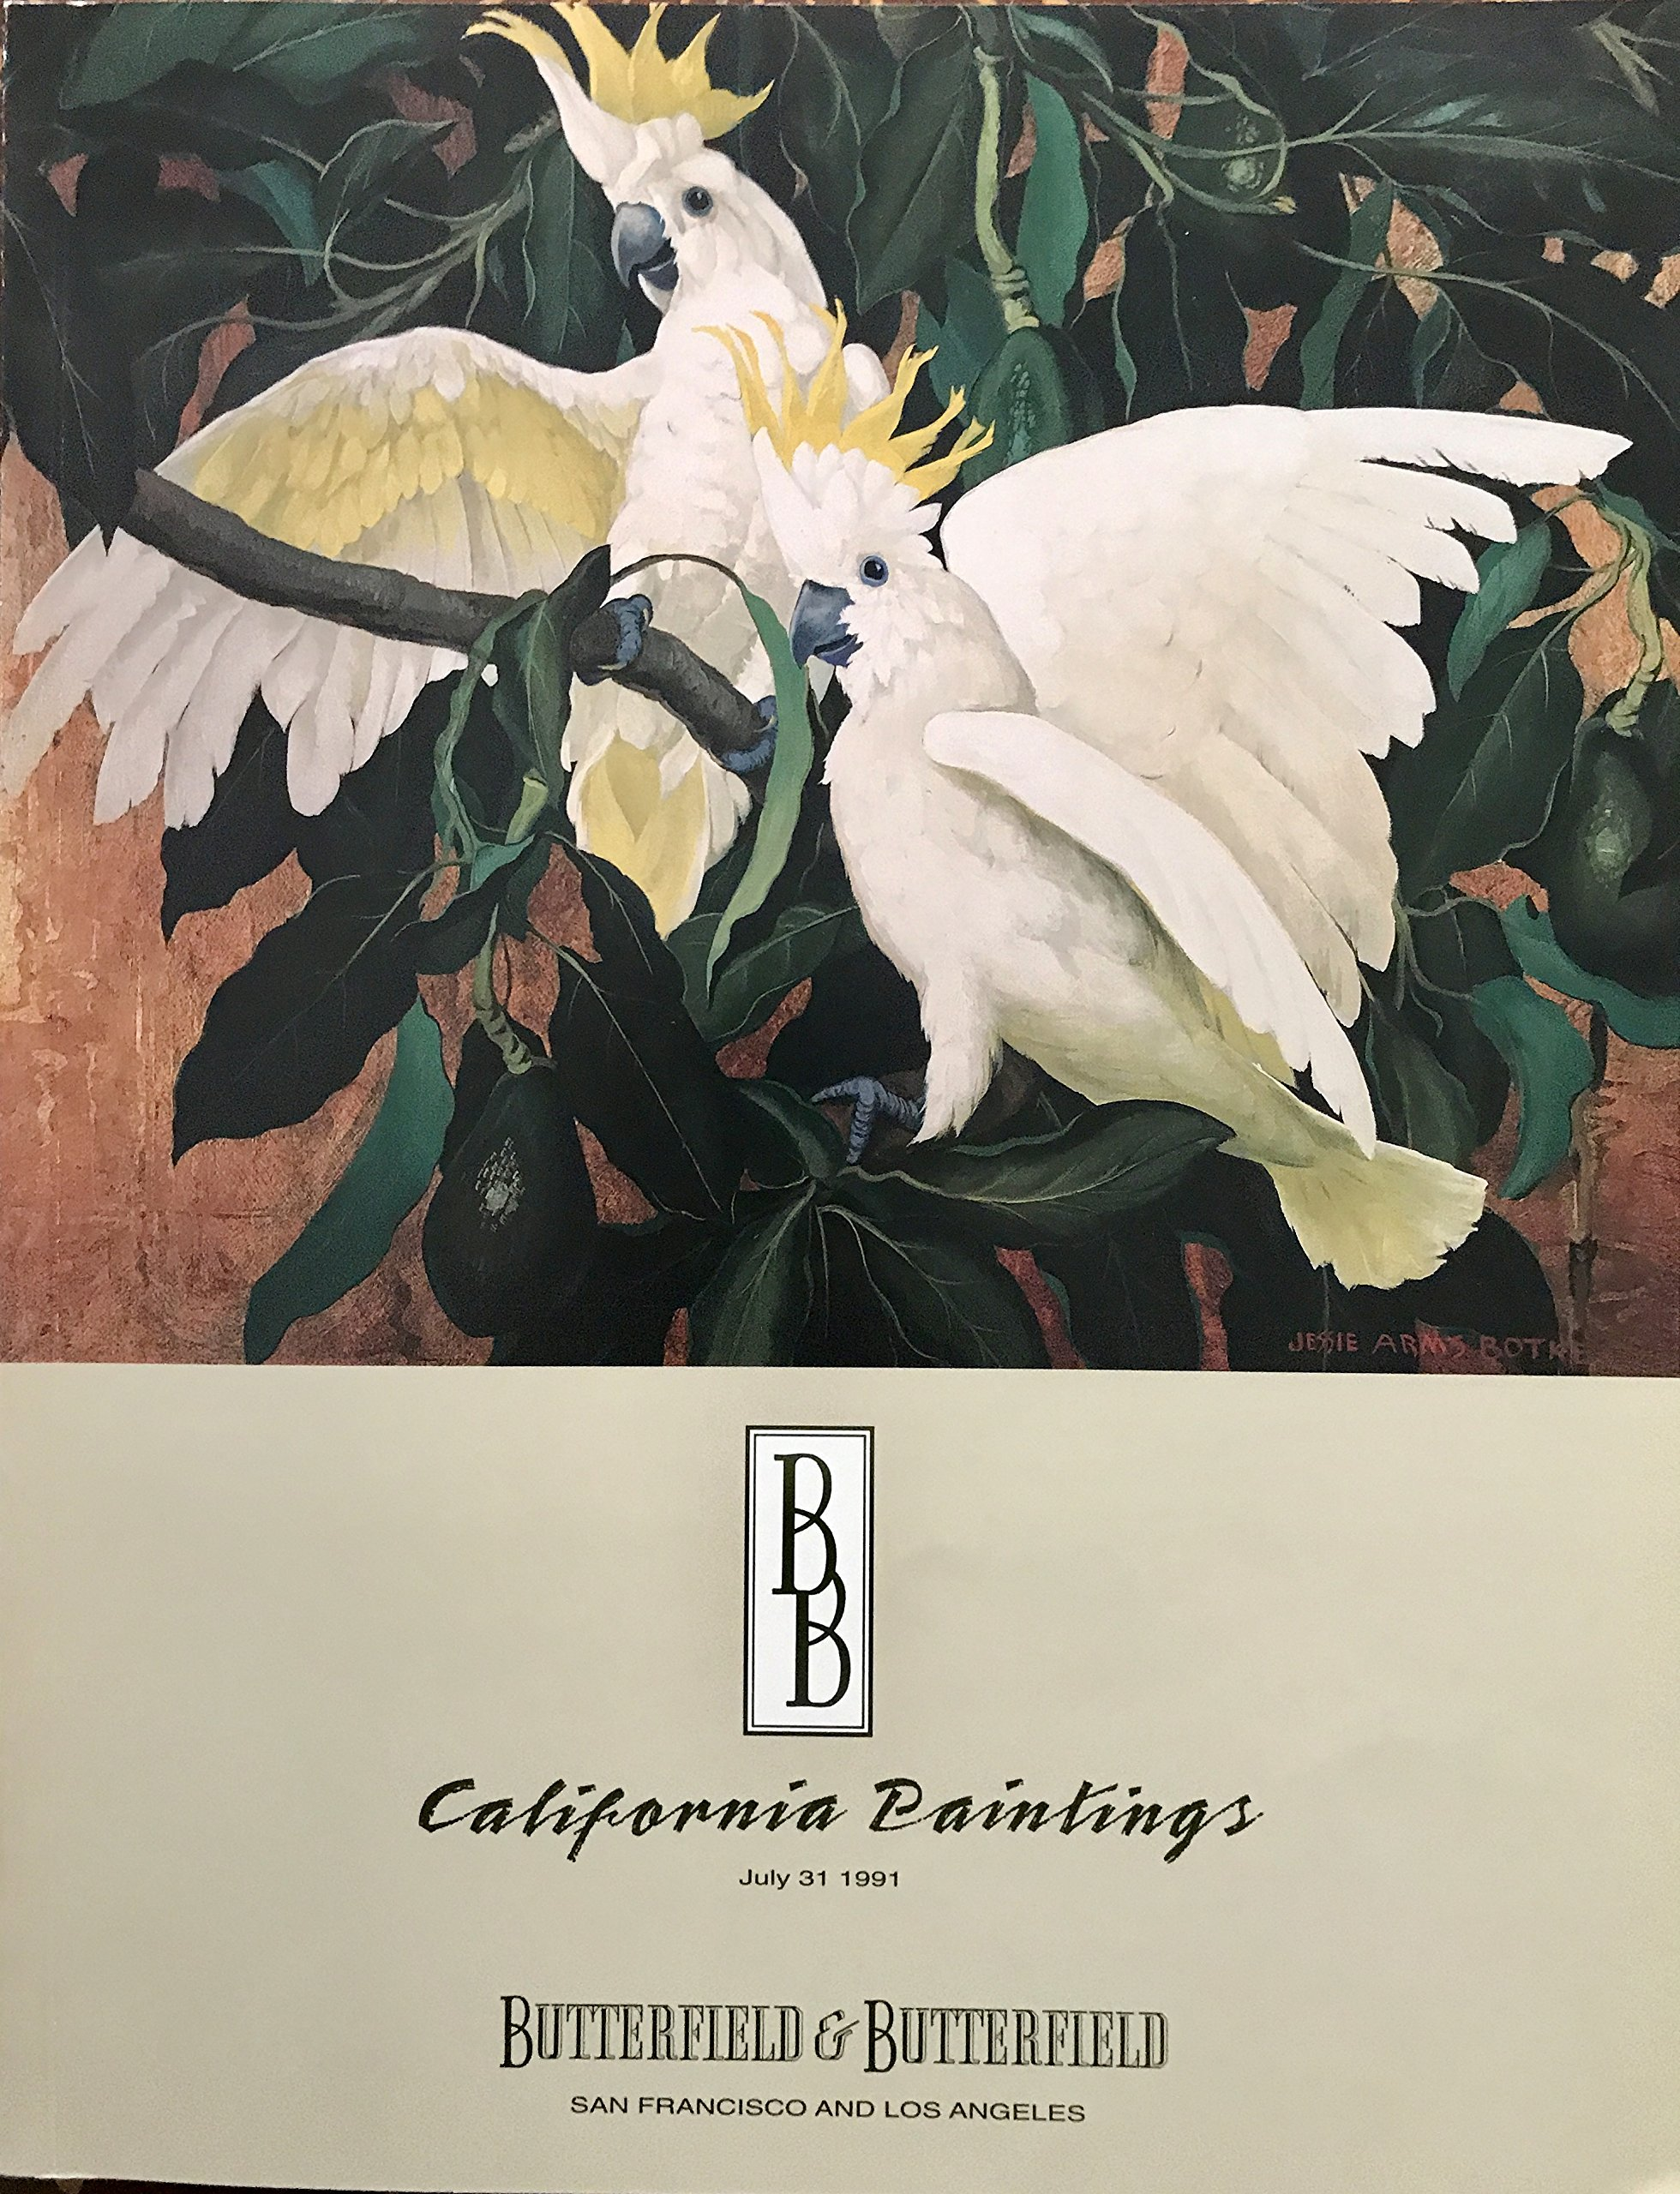 California Paintings July 31, 1991 in San Francisco and Los